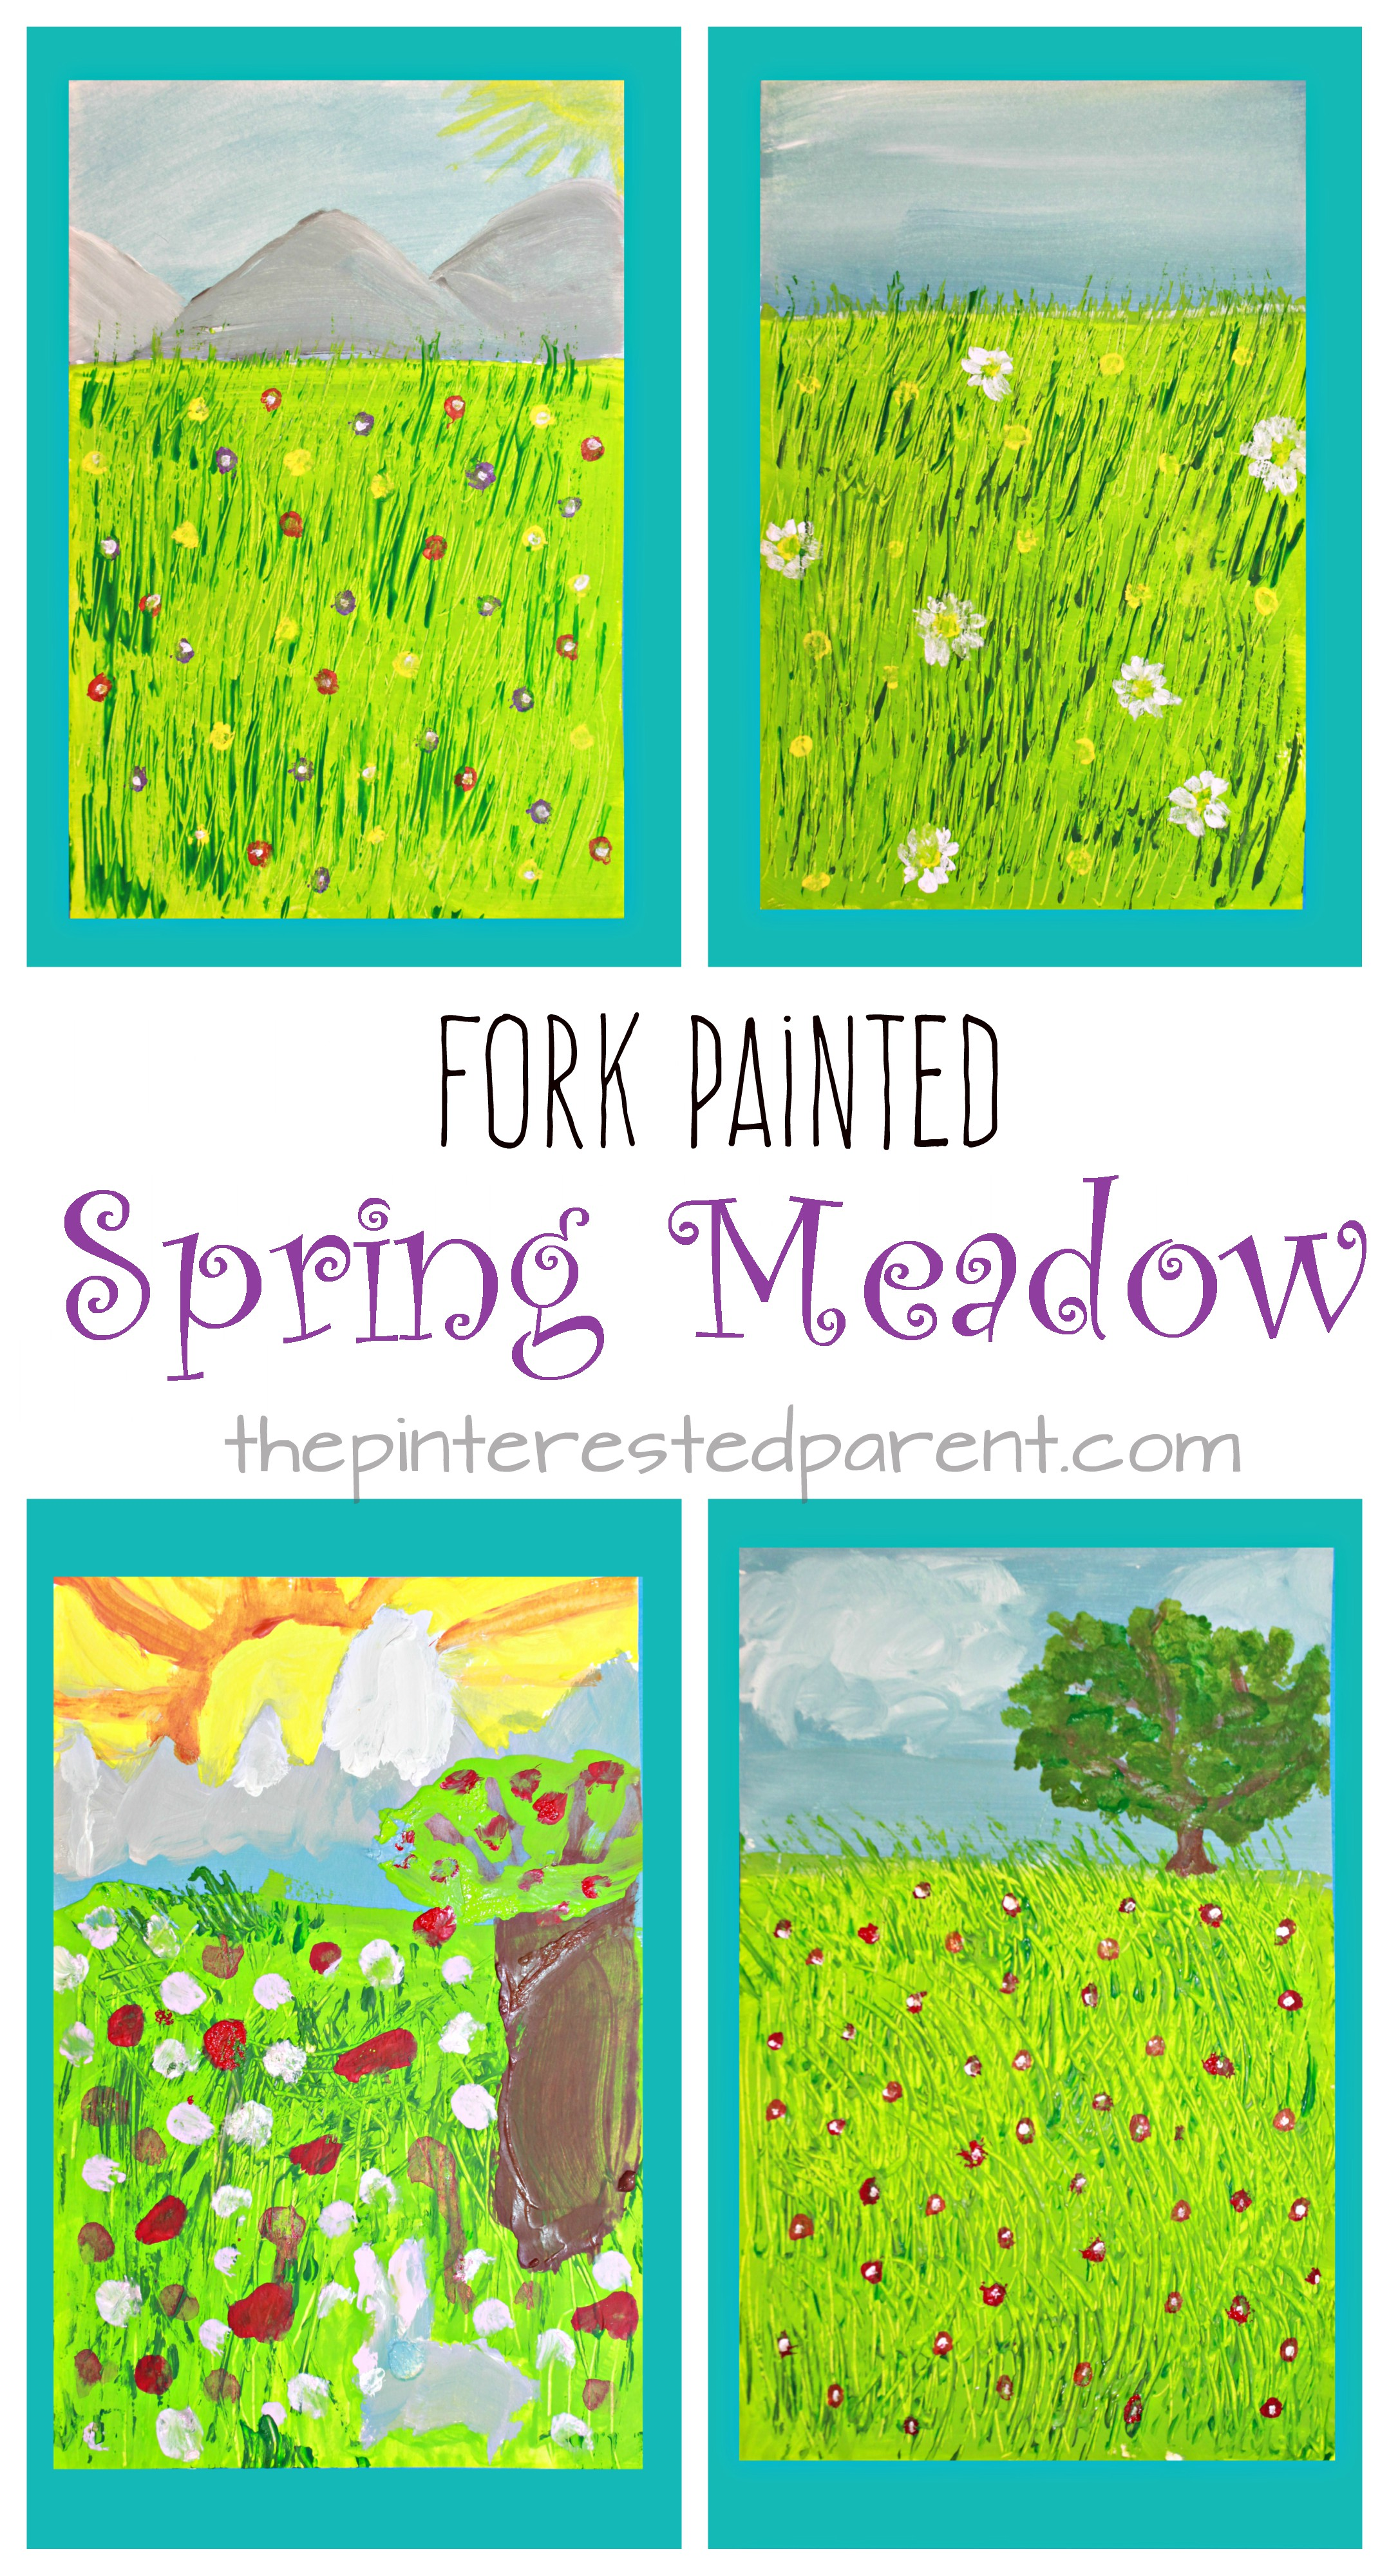 Fork Painted Spring Meadow – The Pinterested Parent